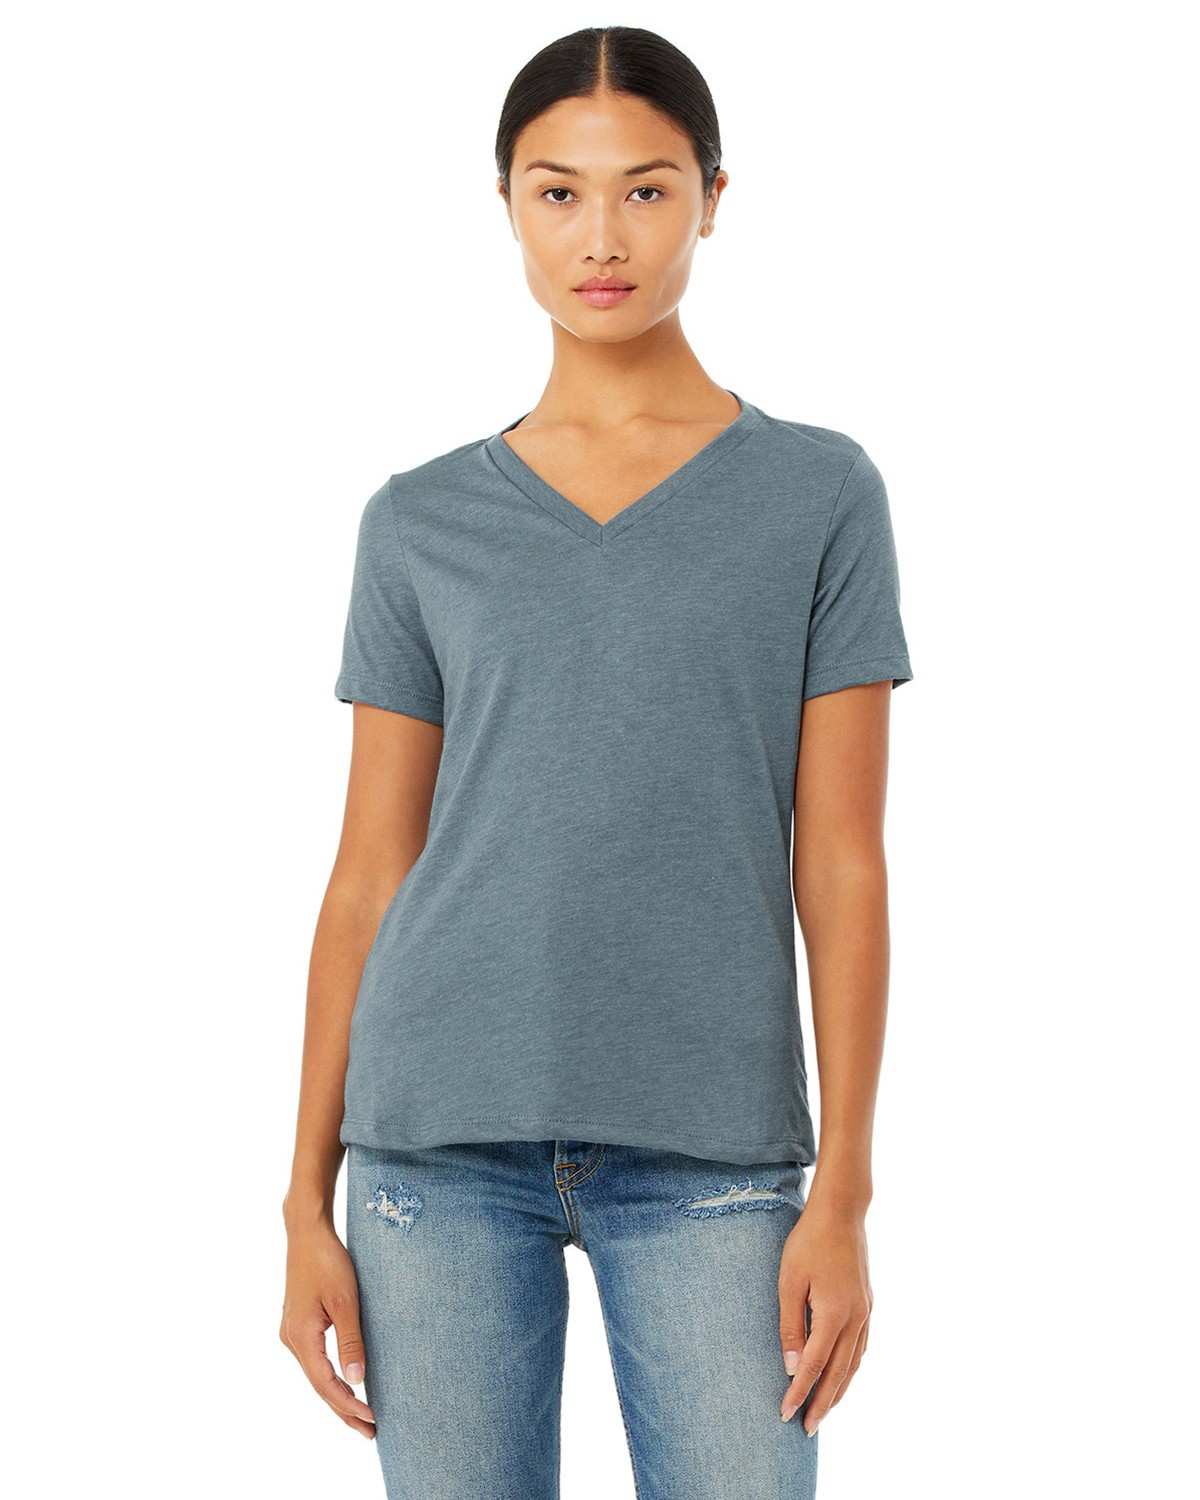 f23df842441561 Buy Bella + Canvas 6405 Ladies Missy's Relaxed Jersey Short-Sleeve V ...